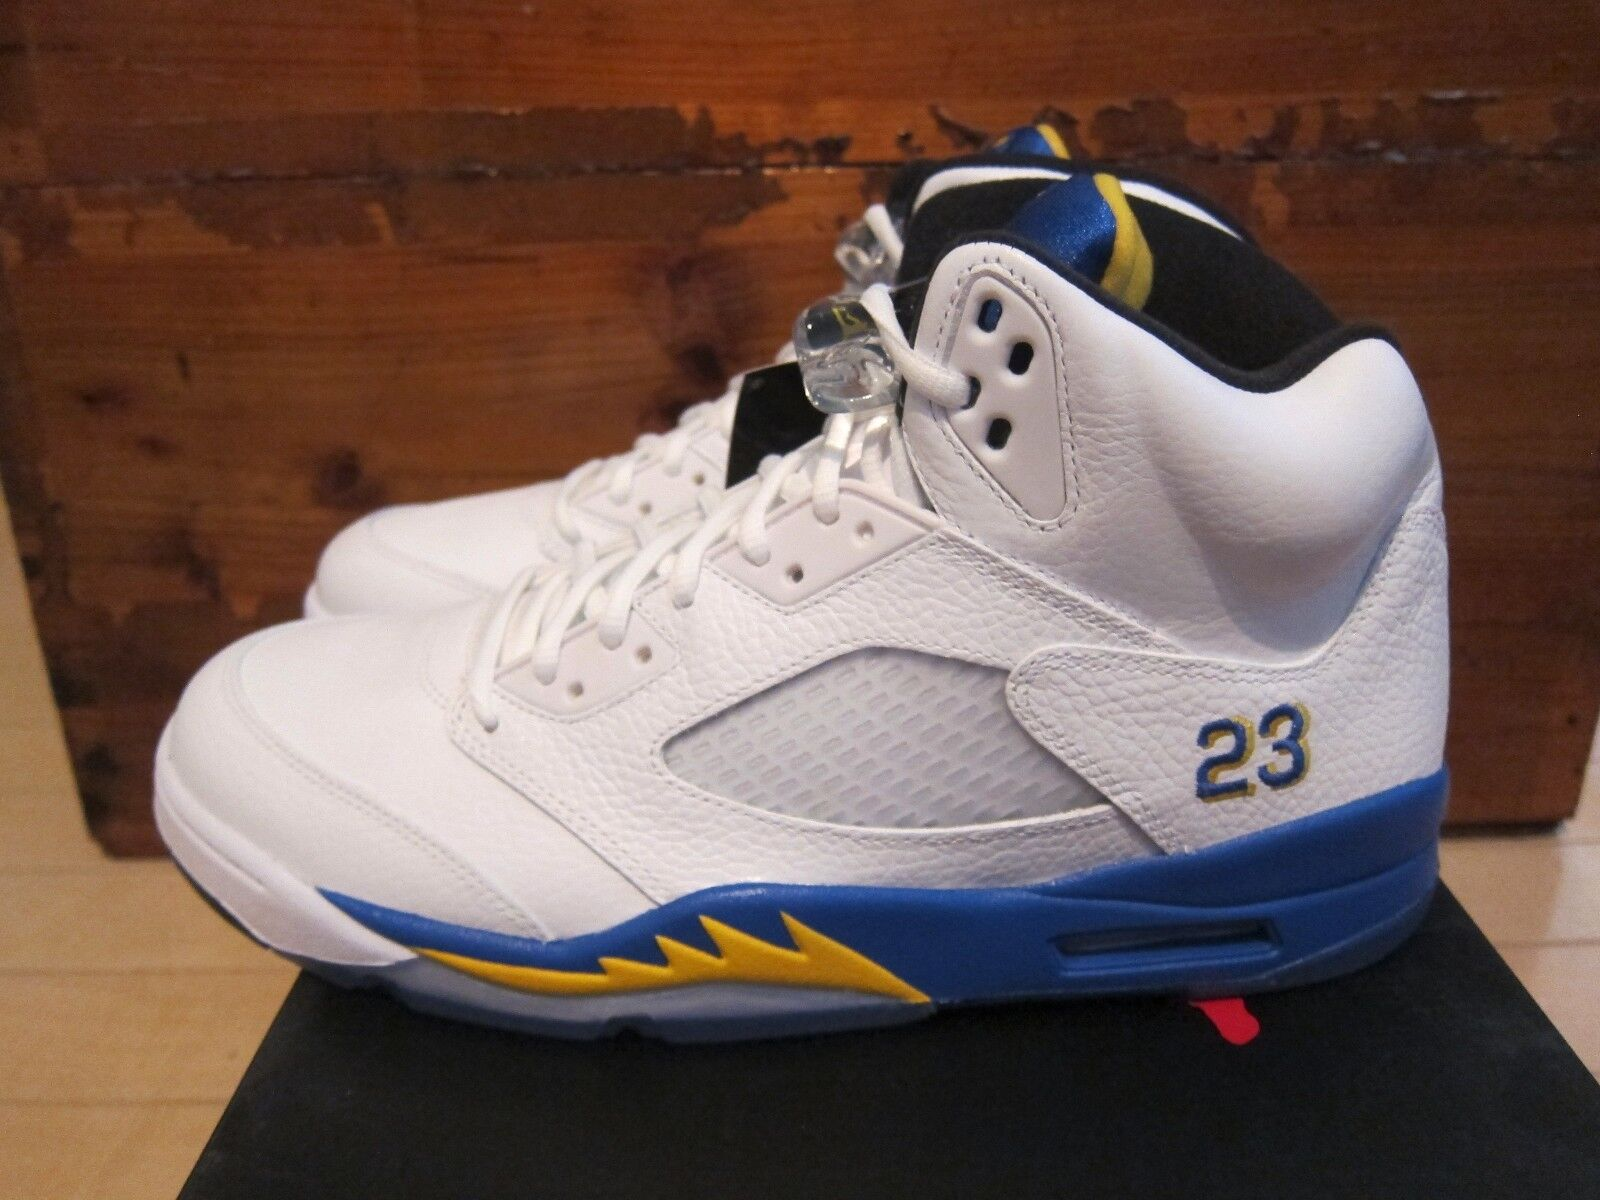 Nike Air Jordan 5 V Retro Laney Blue Yellow Maize White size 11.5